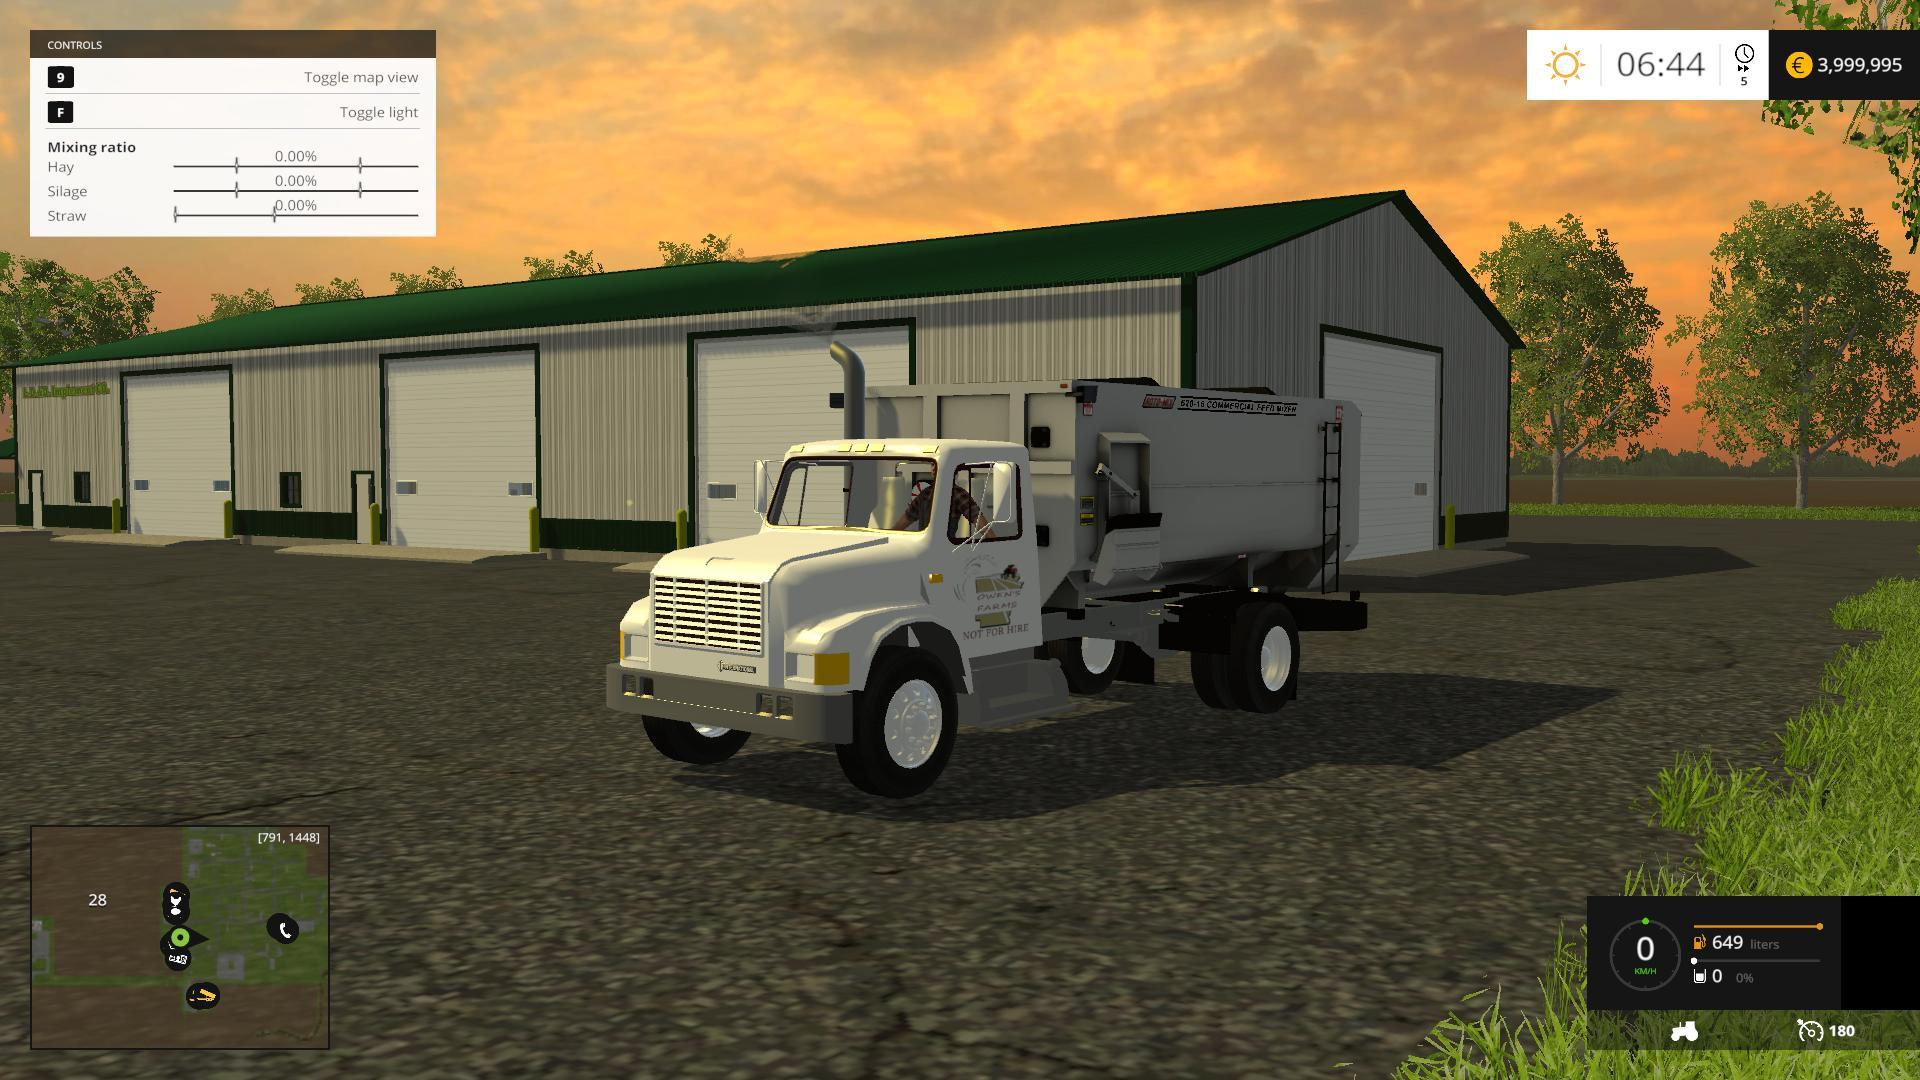 MIDWEST GRAIN AND LIVESTOCK V MAP Farming Simulator - Farming simulator 2015 us map feed cows